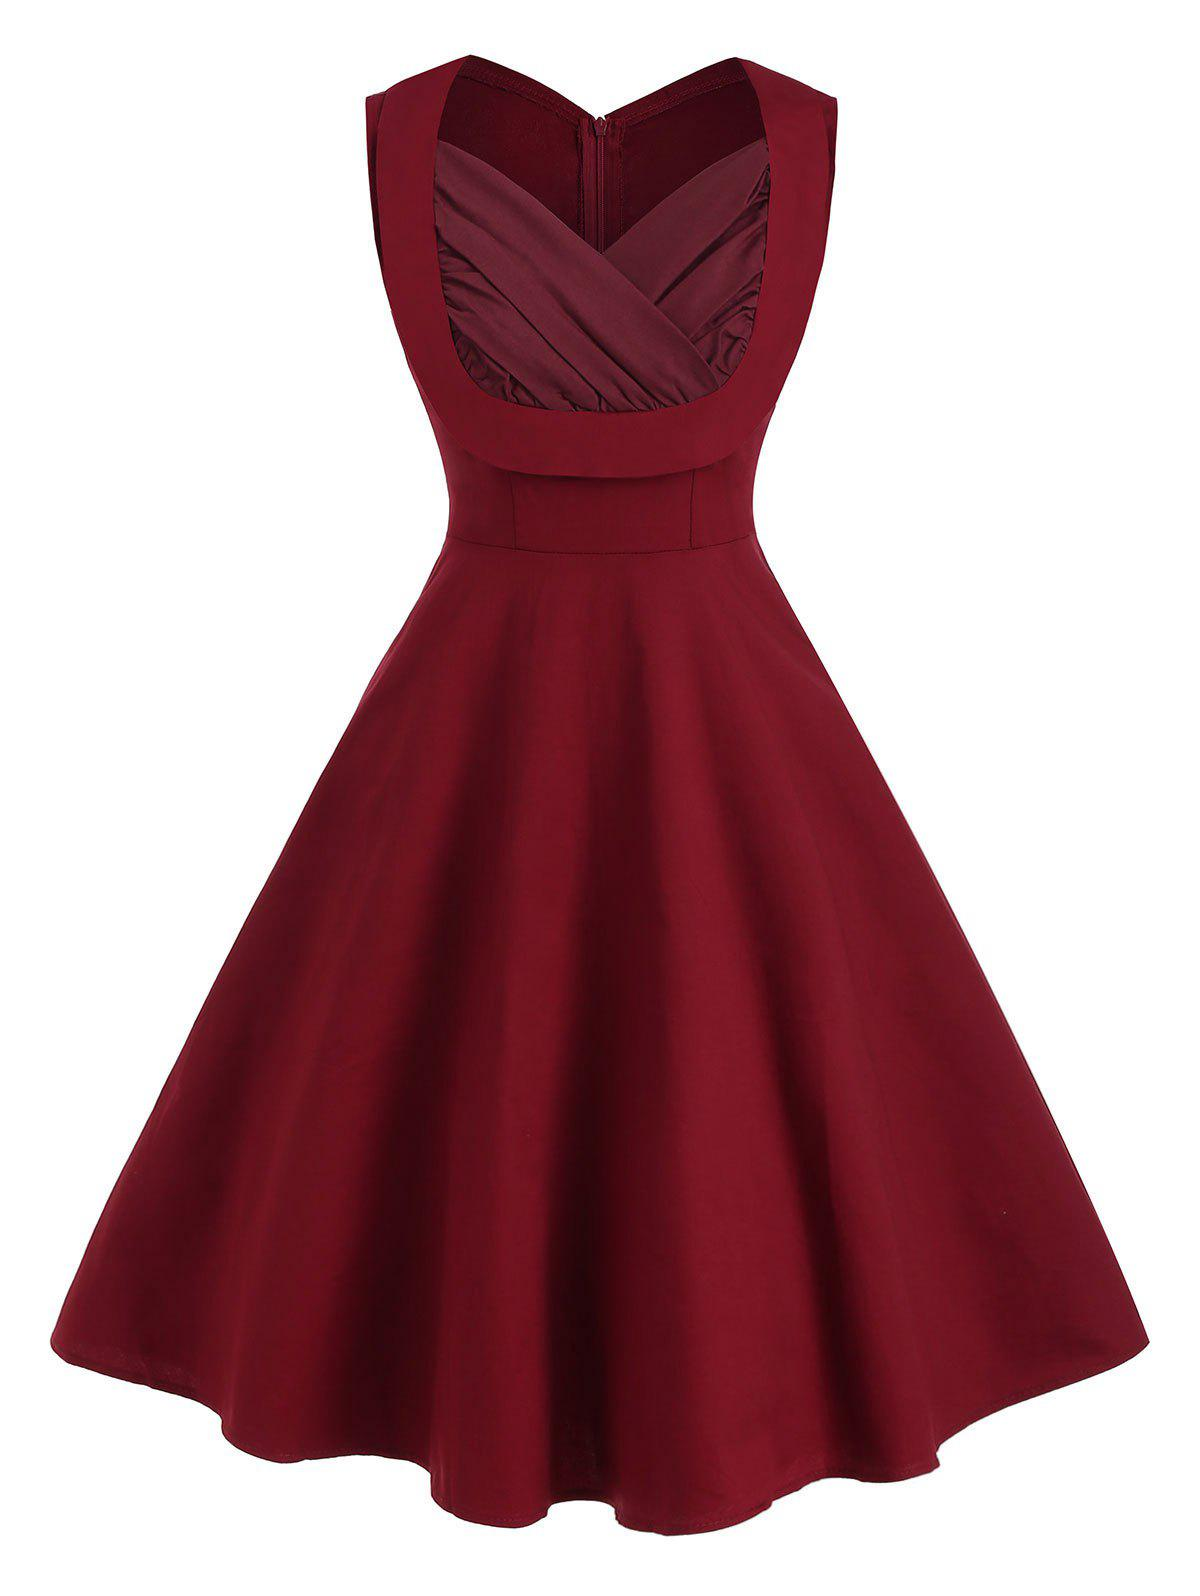 Sweetheart Neck Ruched Sleeveless Vintage Dress - DEEP RED 2XL